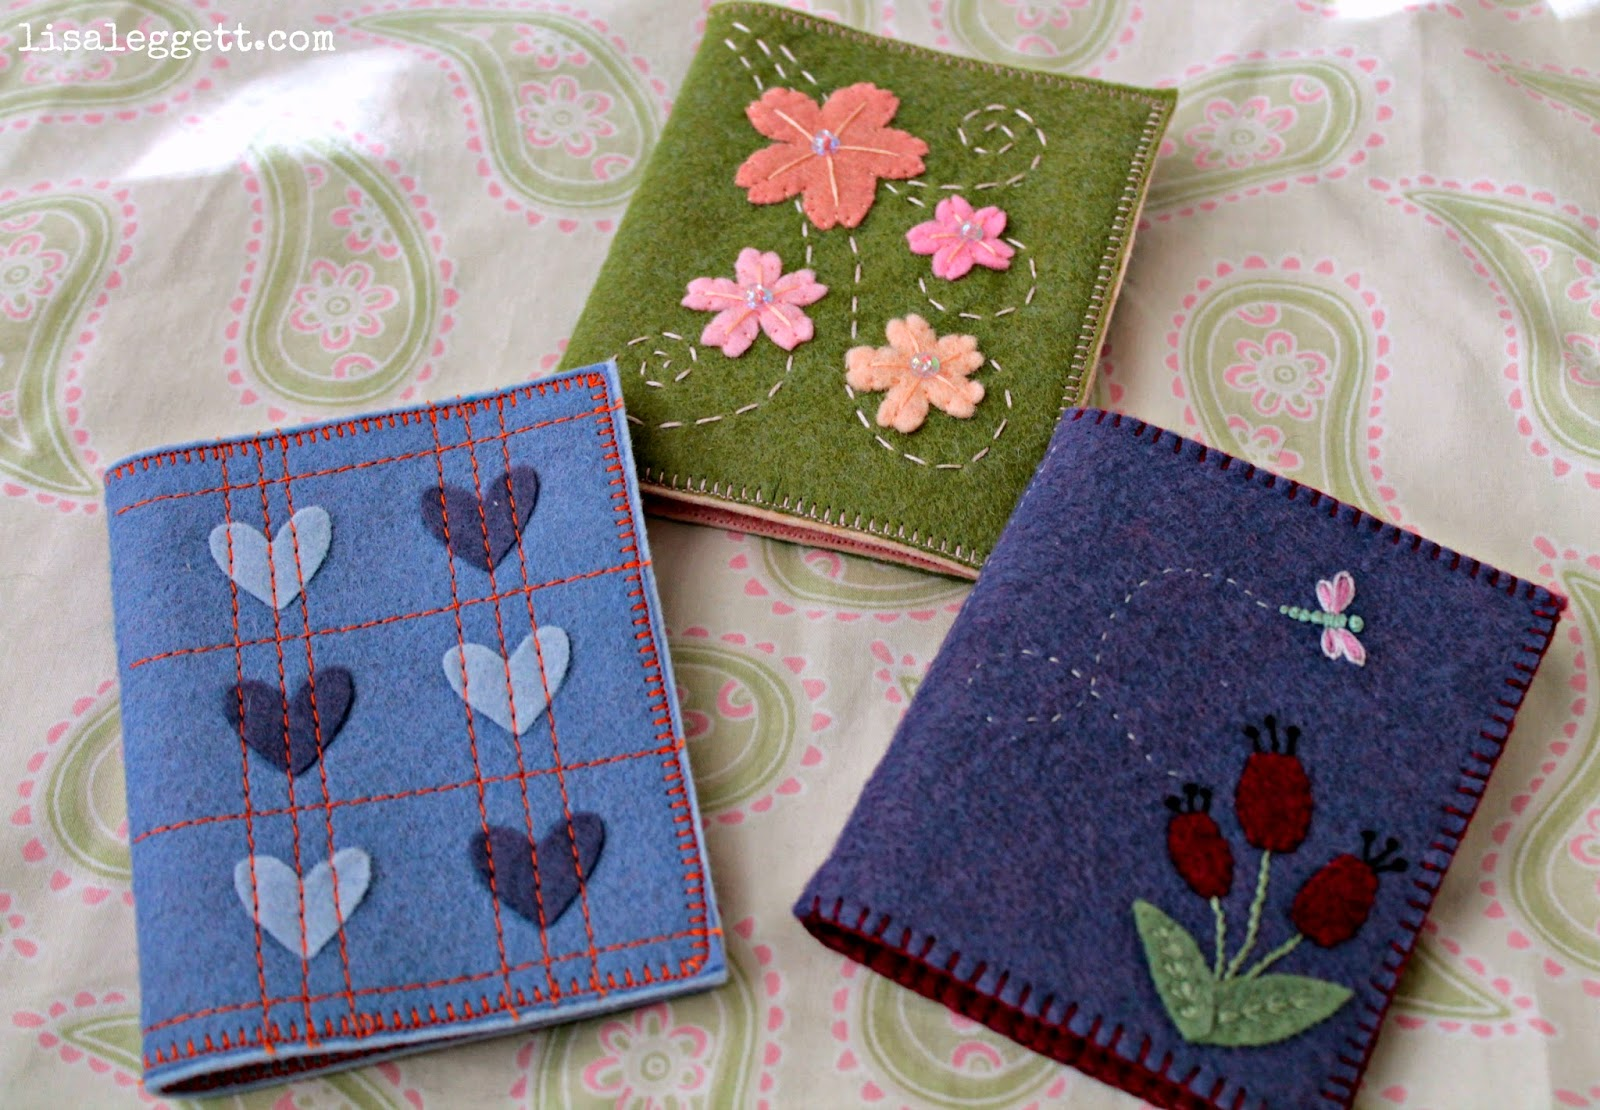 Felt & Embroidered Needle Books by Lisa Leggett